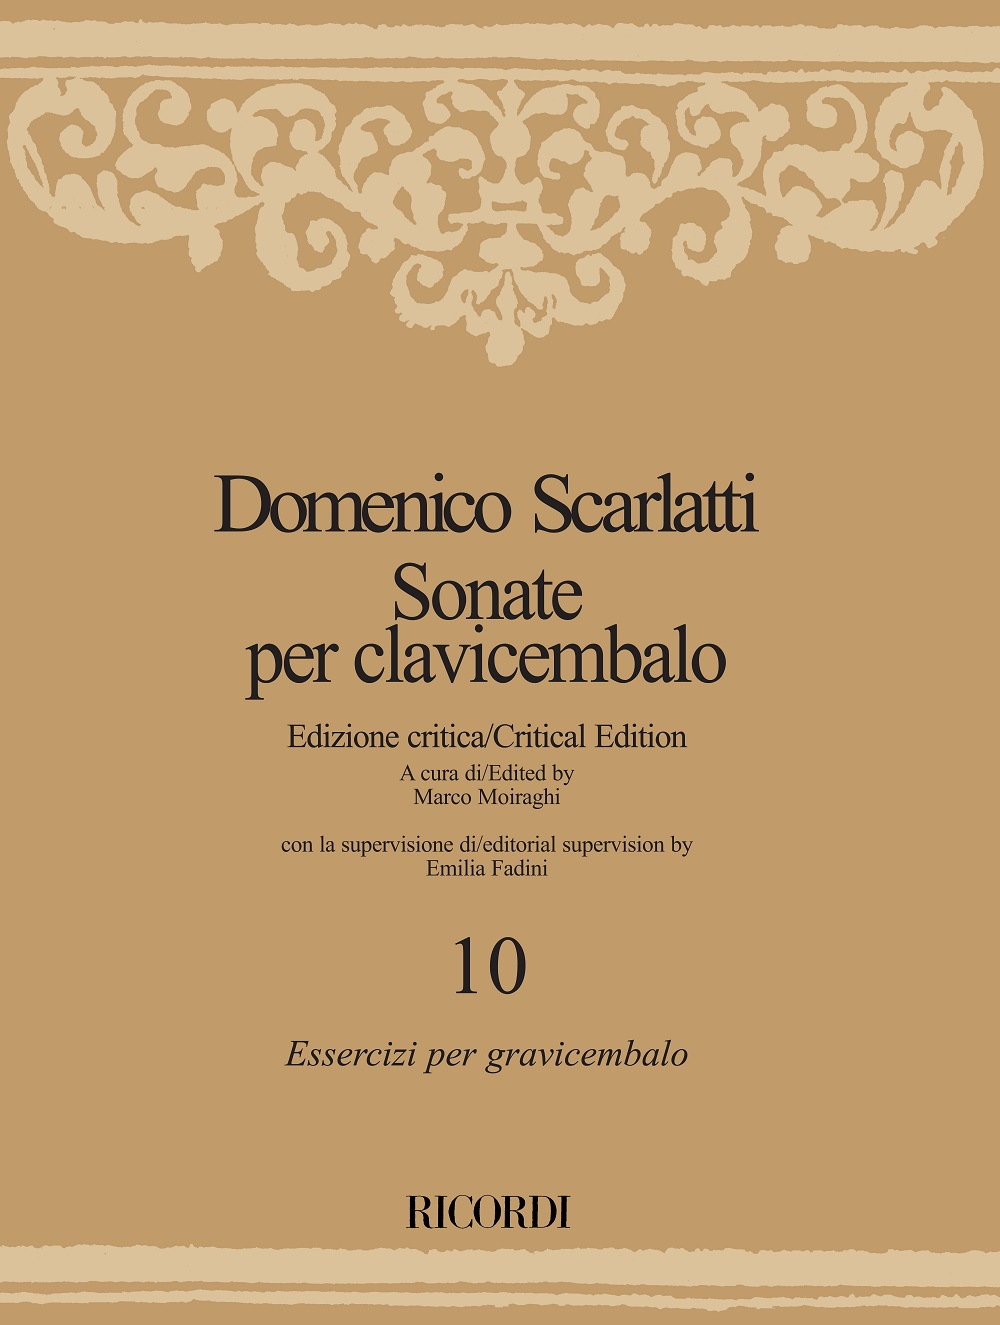 Domenico Scarlatti: Sonate per clavicembalo - Volume 10: Harpsichord: